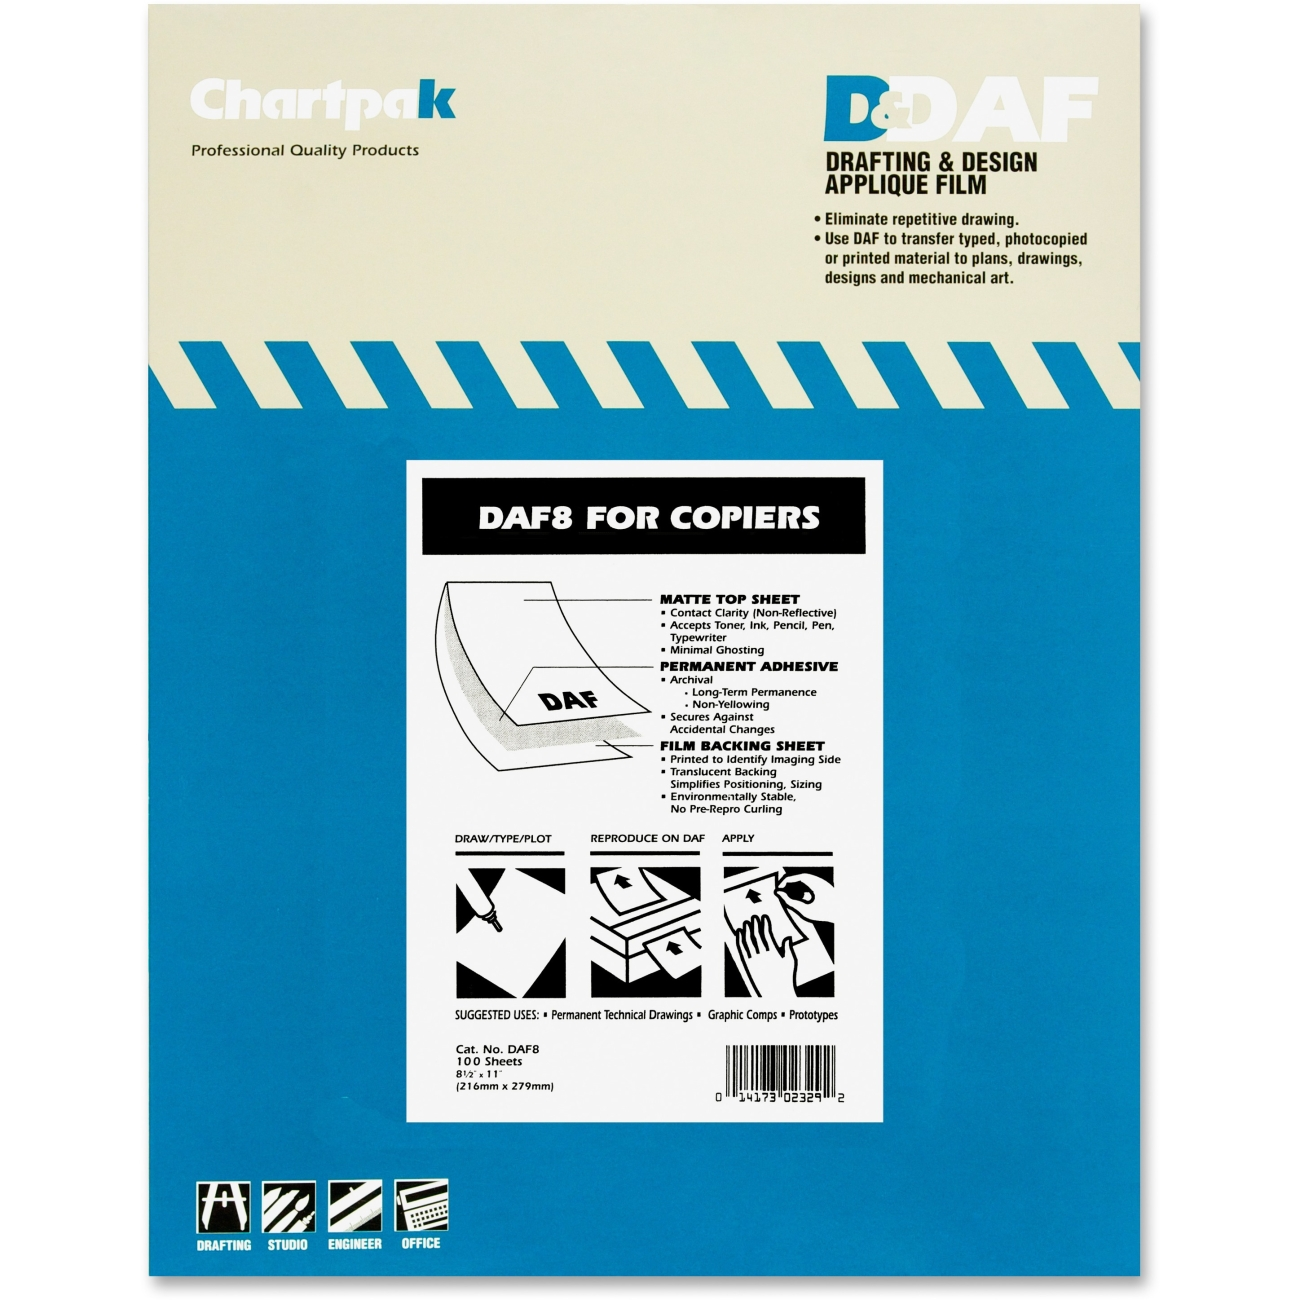 Chartpak Printer Papers, Speciality Papers & Pads